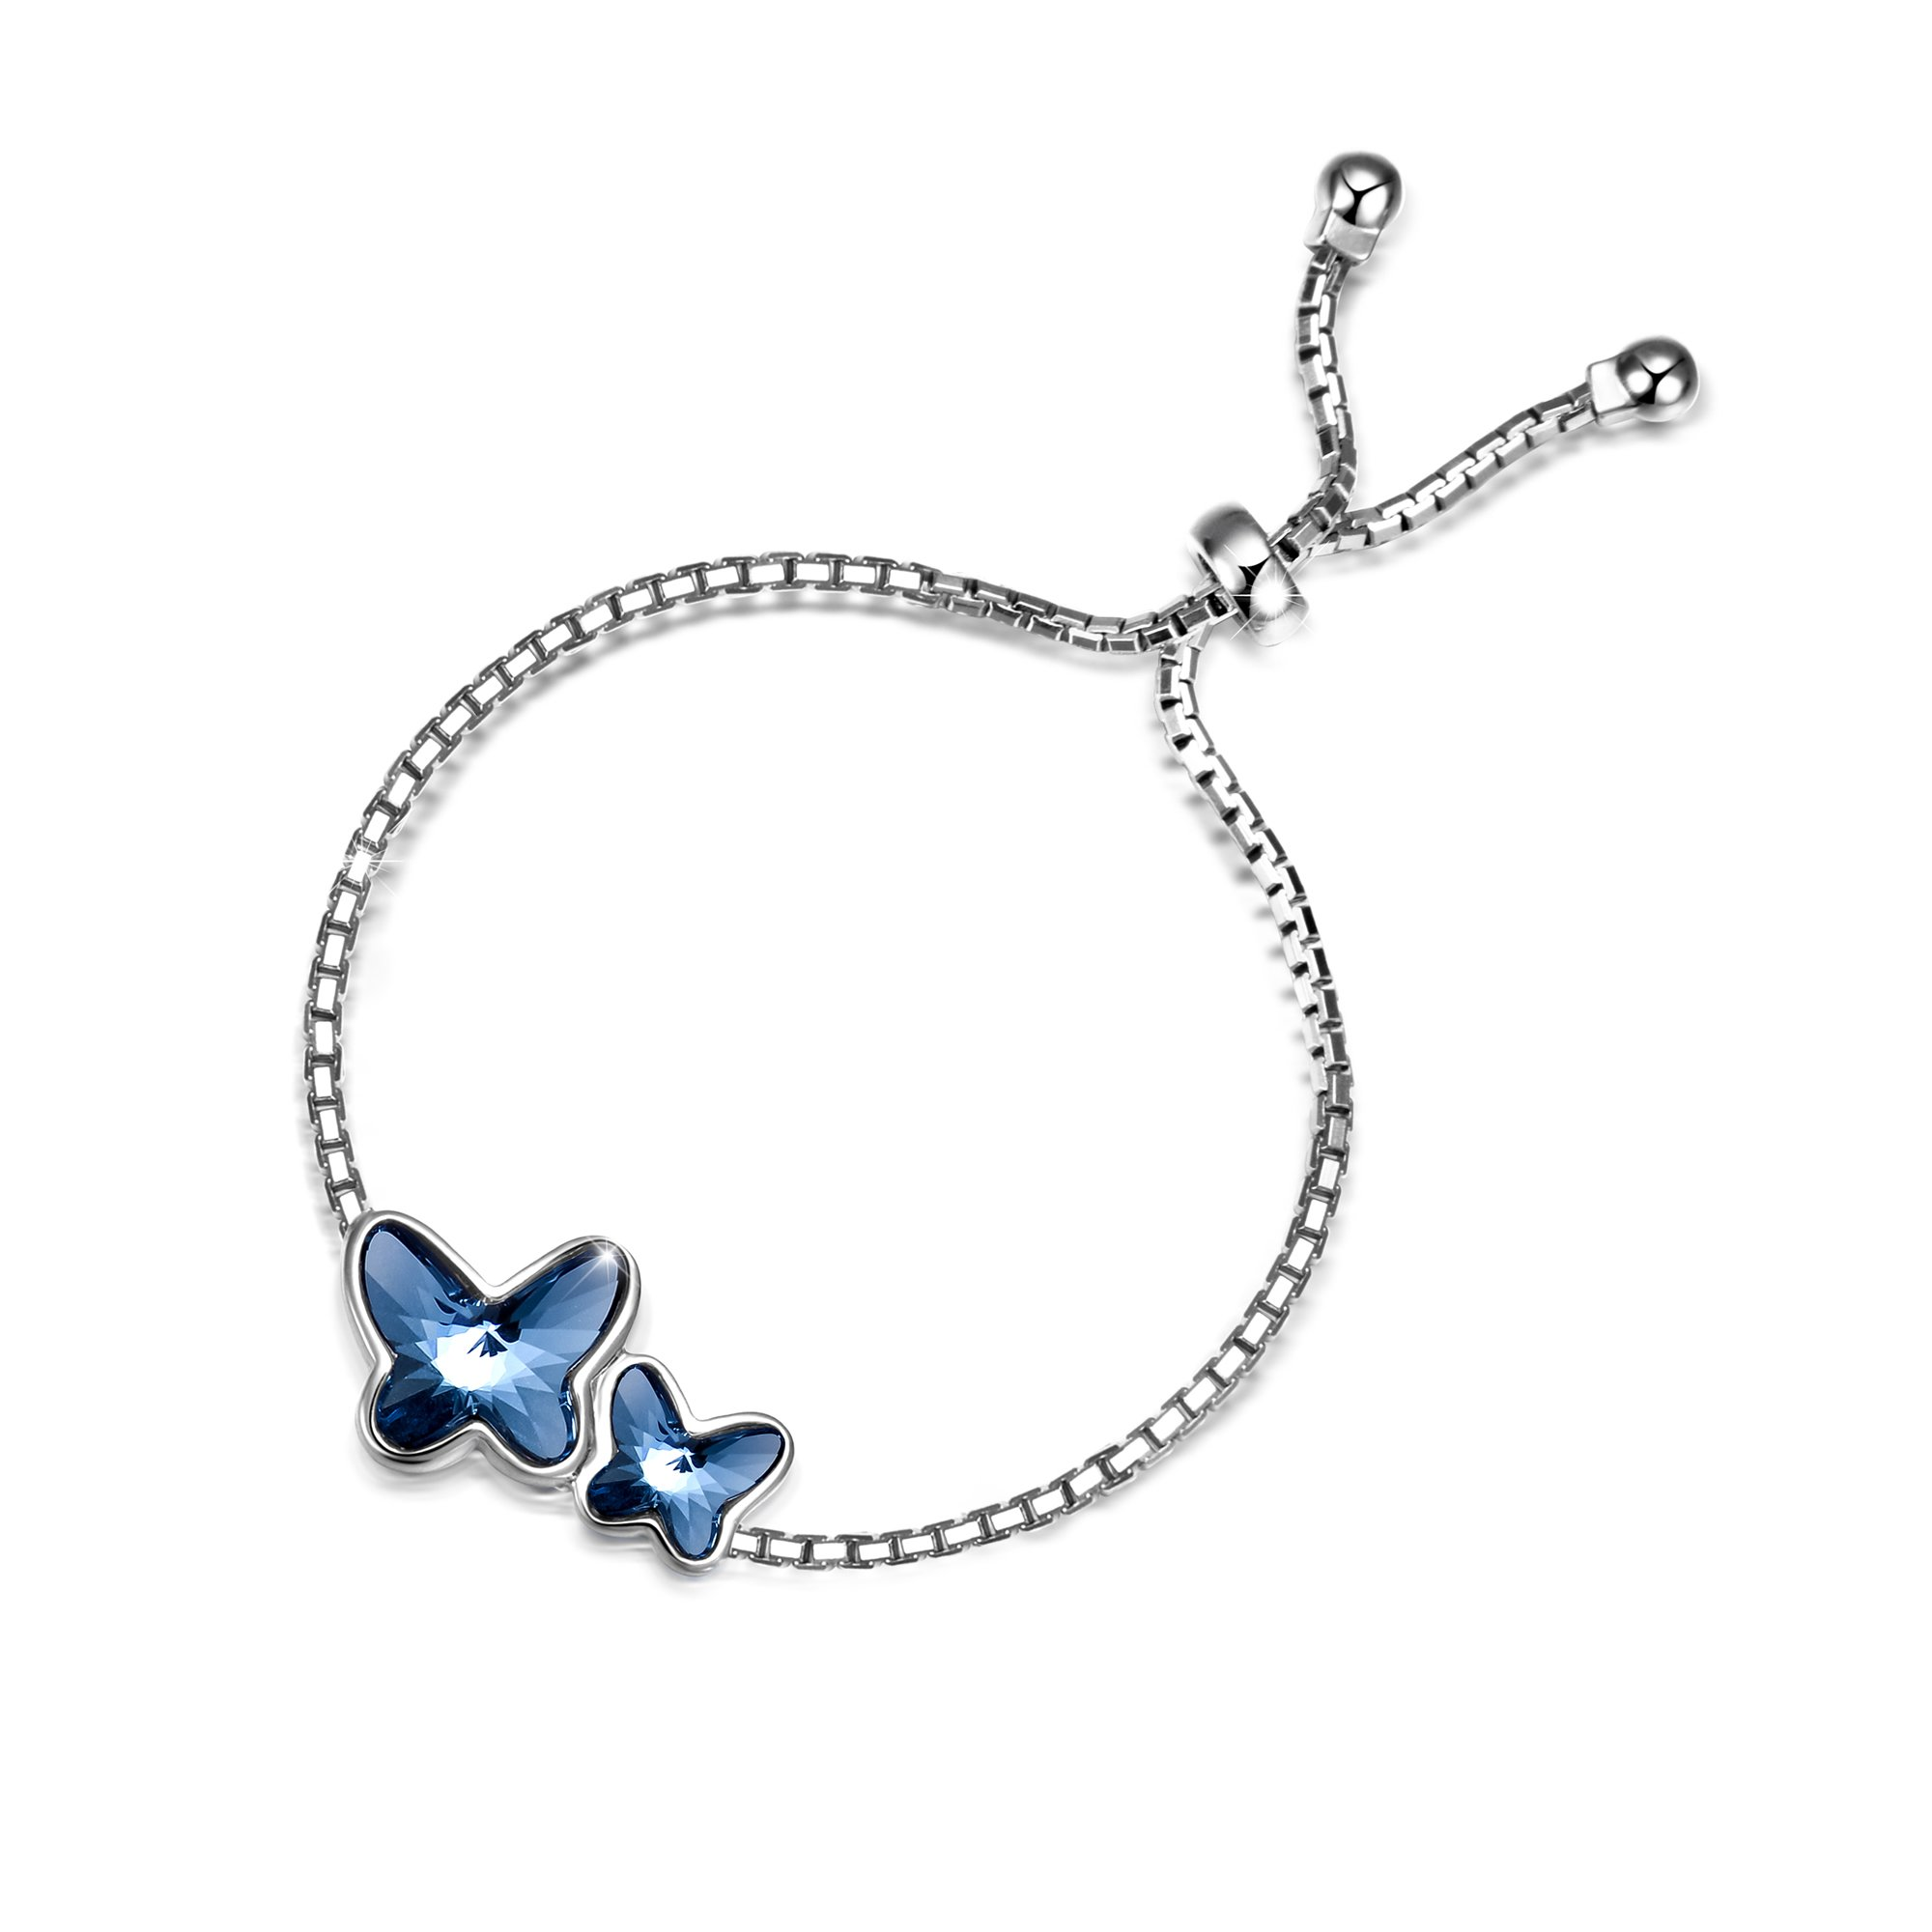 T400 Dream Chasers 925 Sterling Silver Butterfly Bangle Bracelet Made with Swarovski Crystals, 8.7'' Adjustable Love Gift